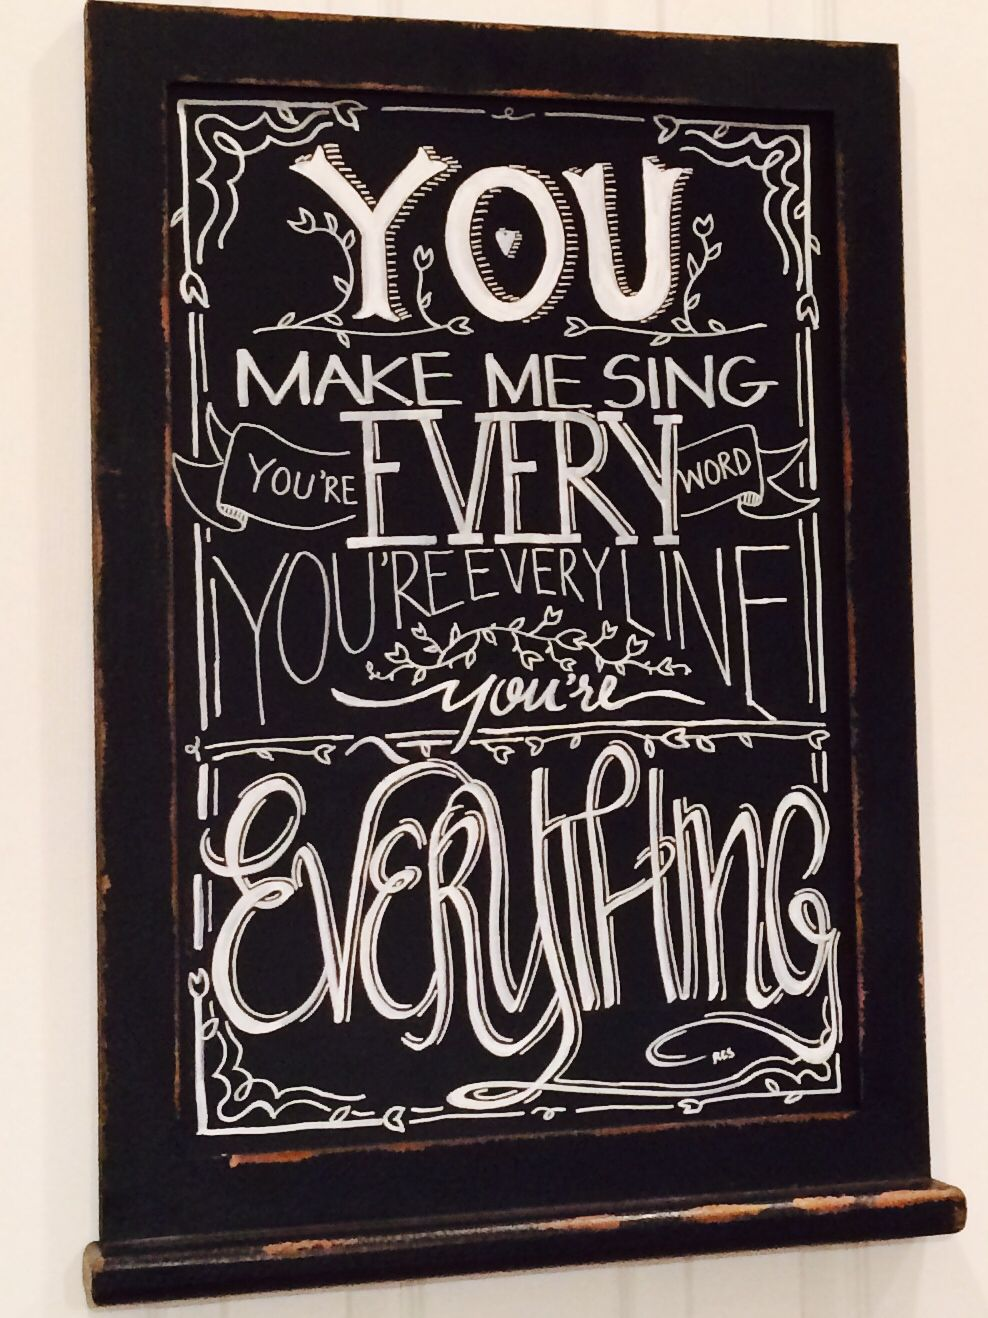 A Few Lines From Our Wedding Song On Chalkboard Michael Buble